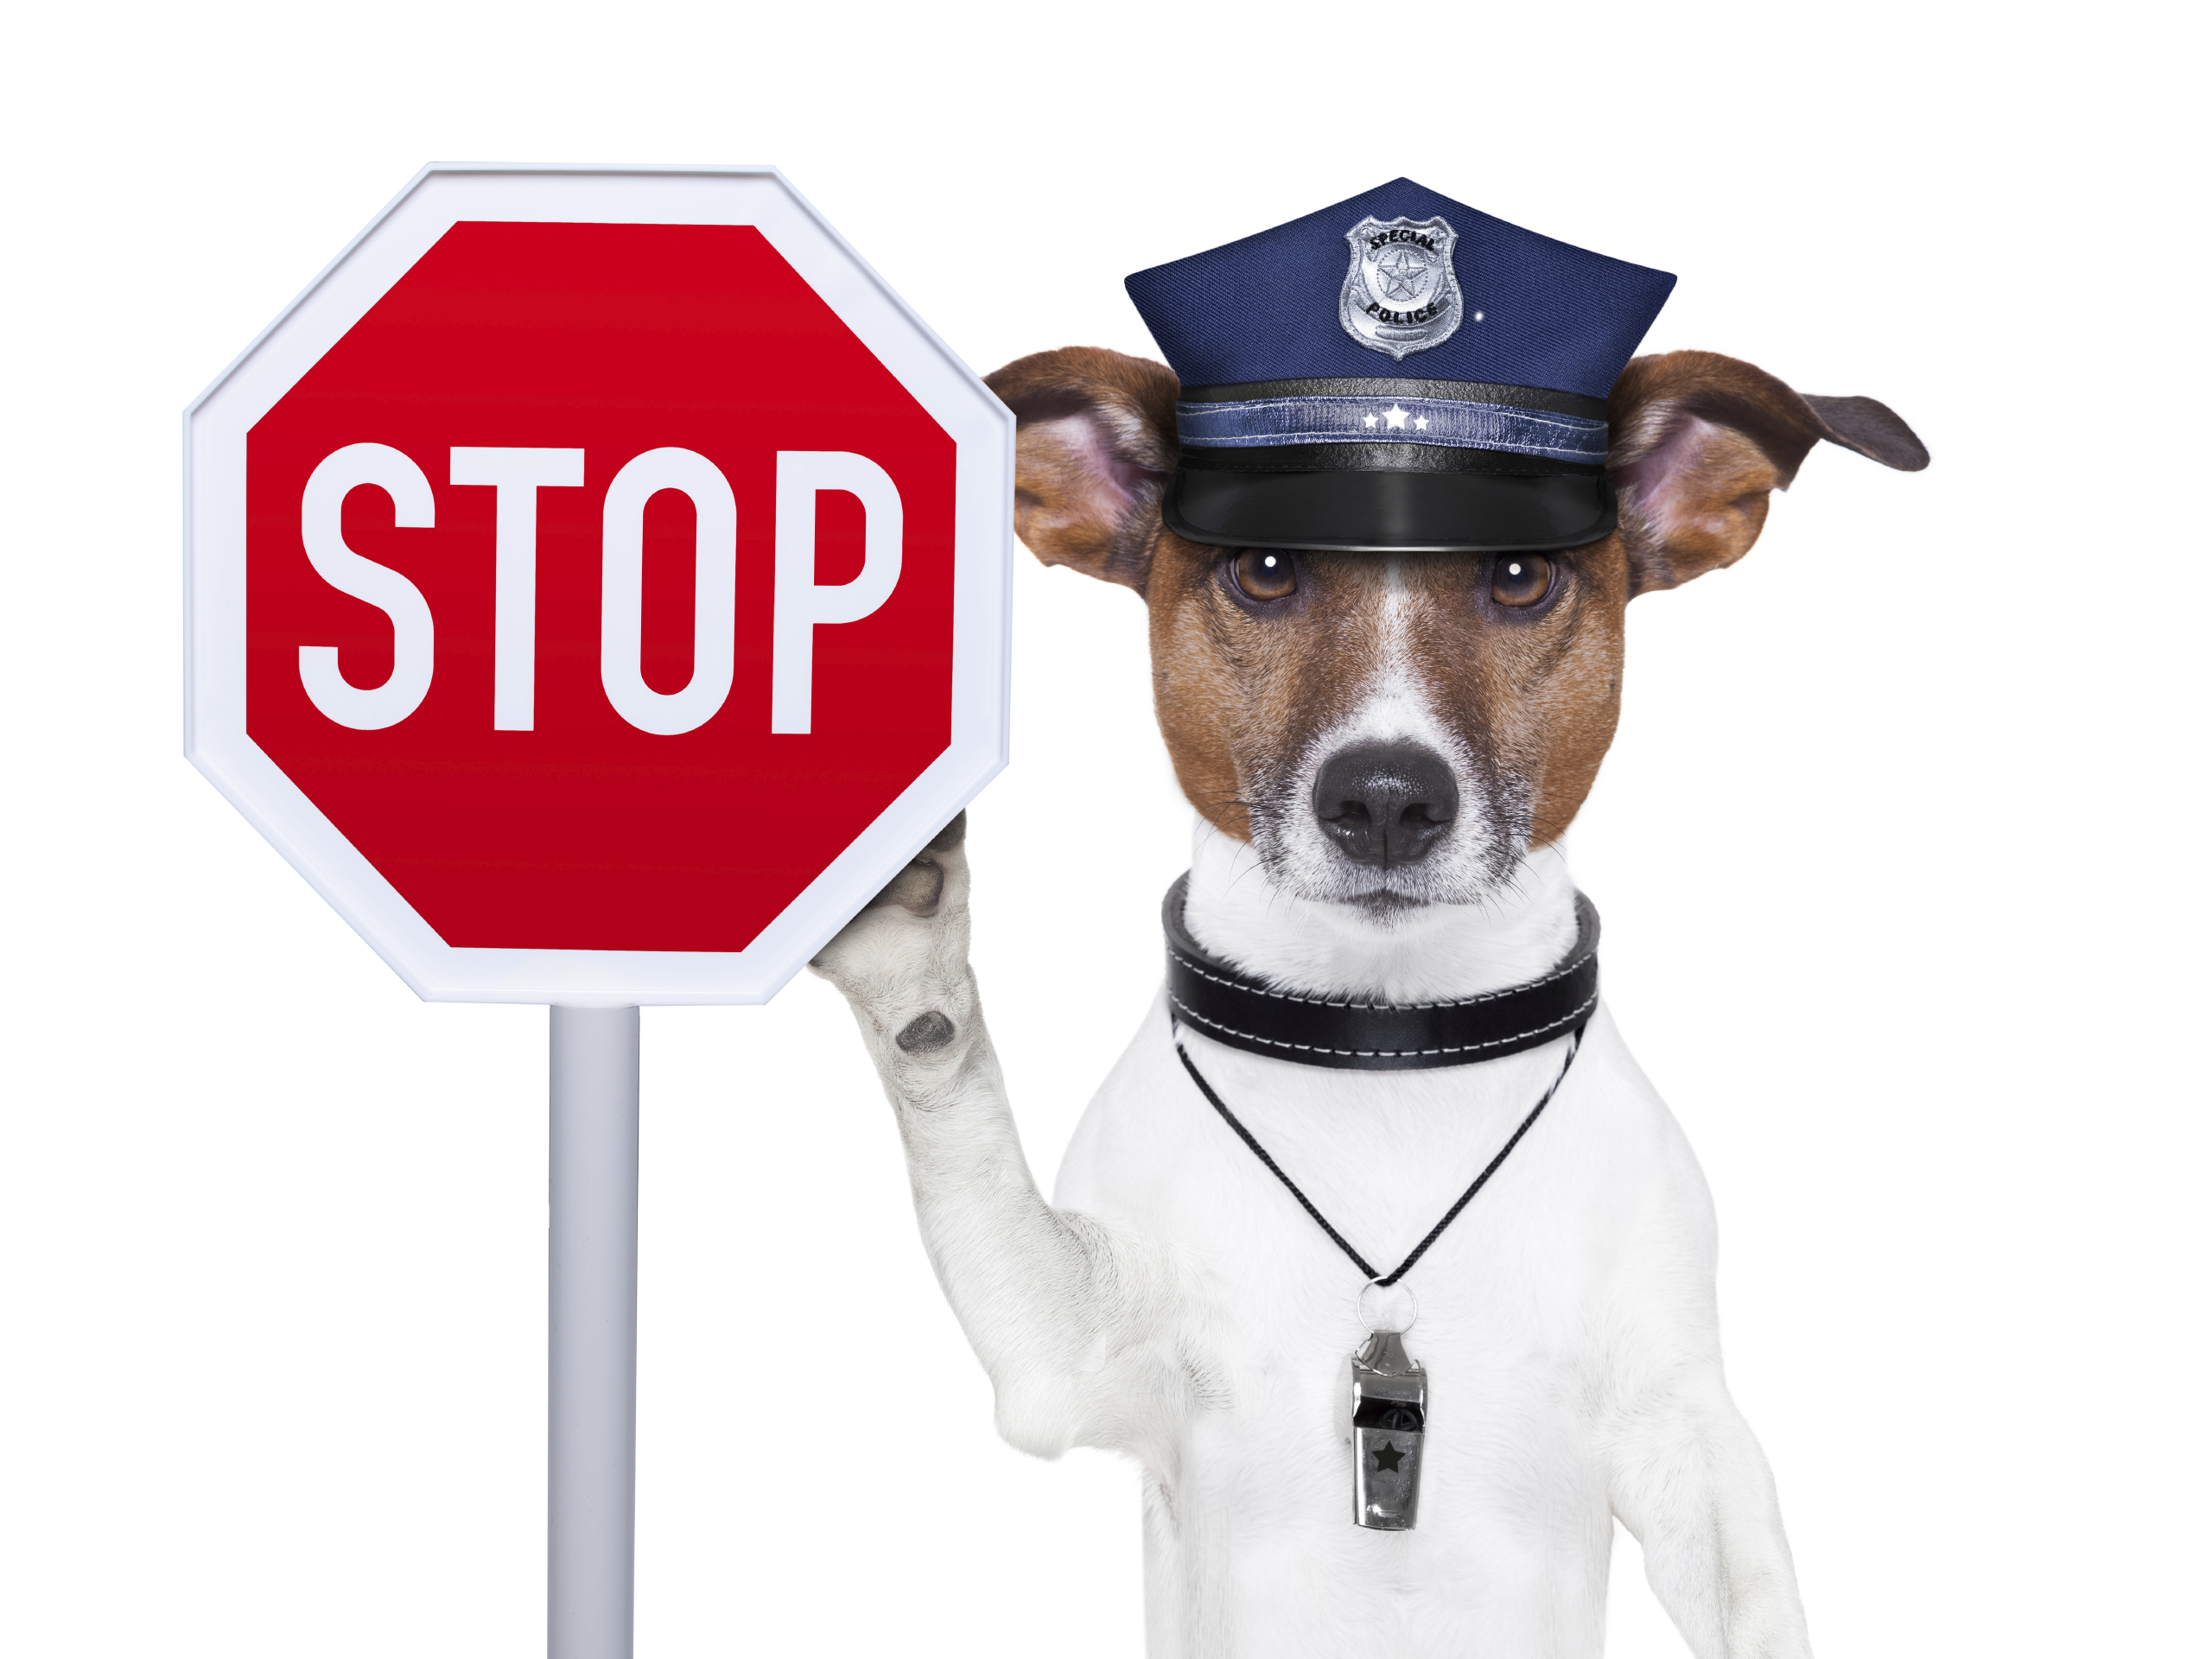 stop-sign-with-a-dog.jpg